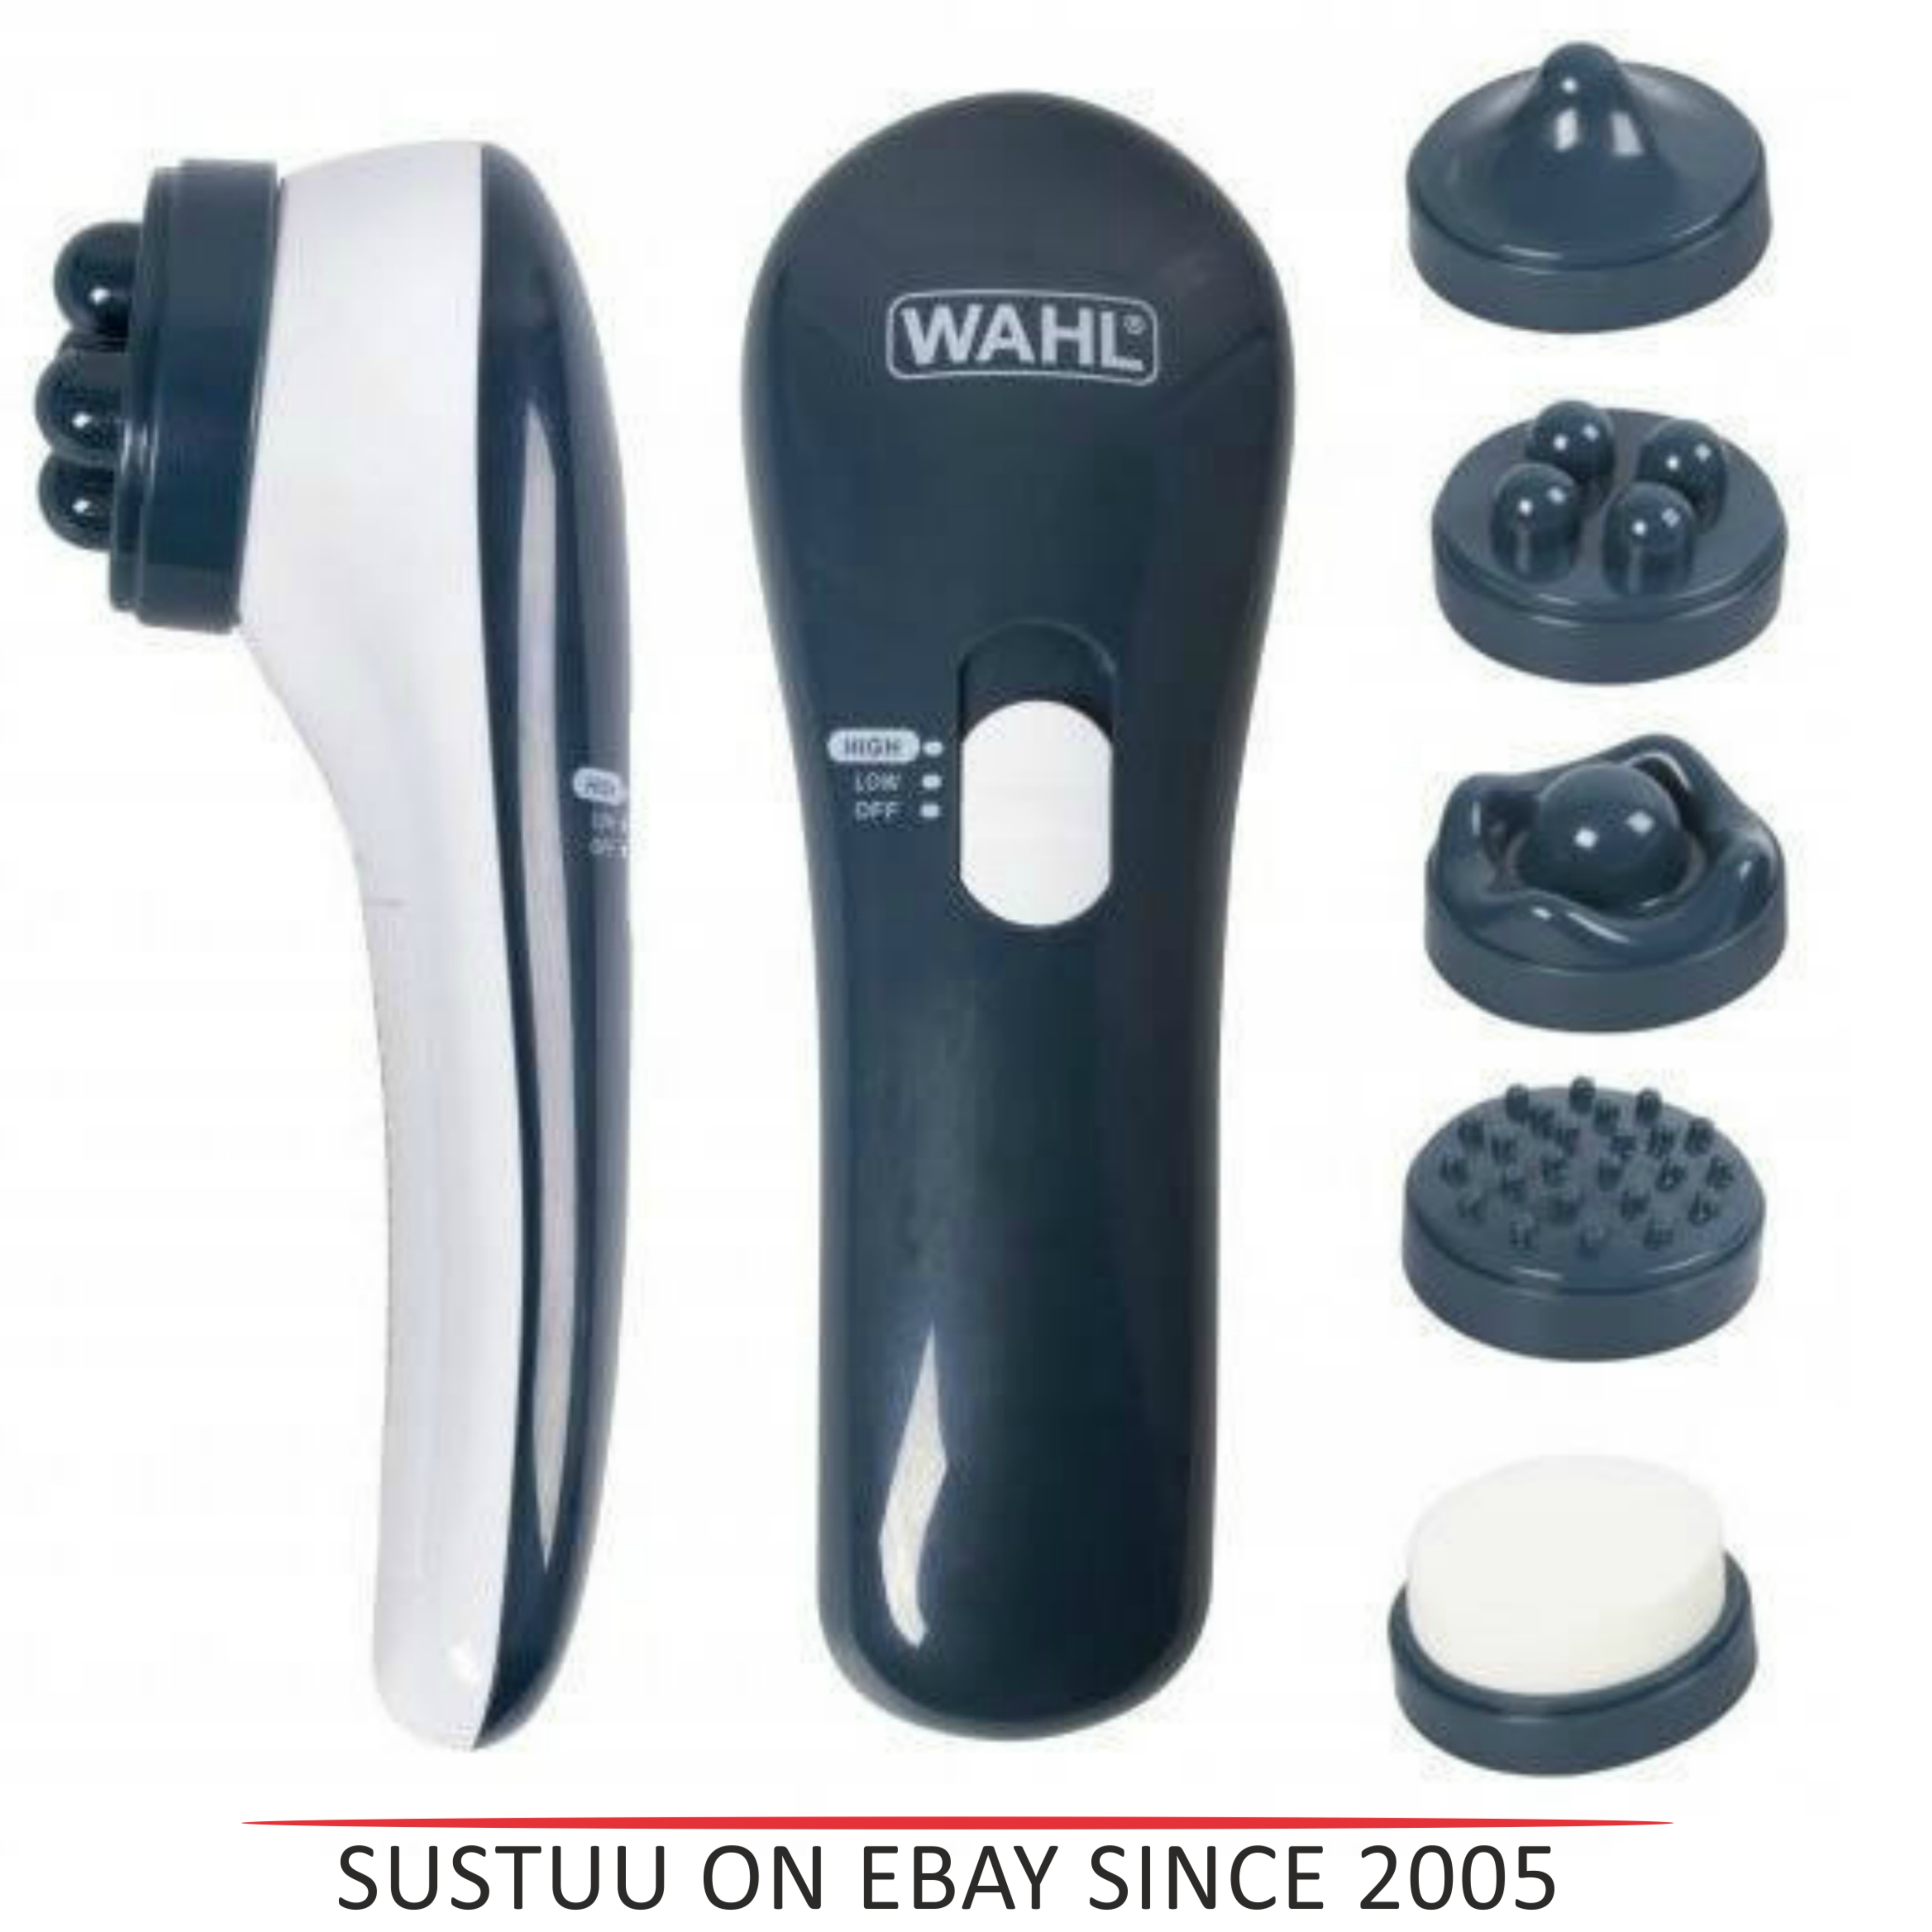 Wahl ZX860 Spot Massager / Therapy / Battery Operated / Hand Held Therapeutic / New